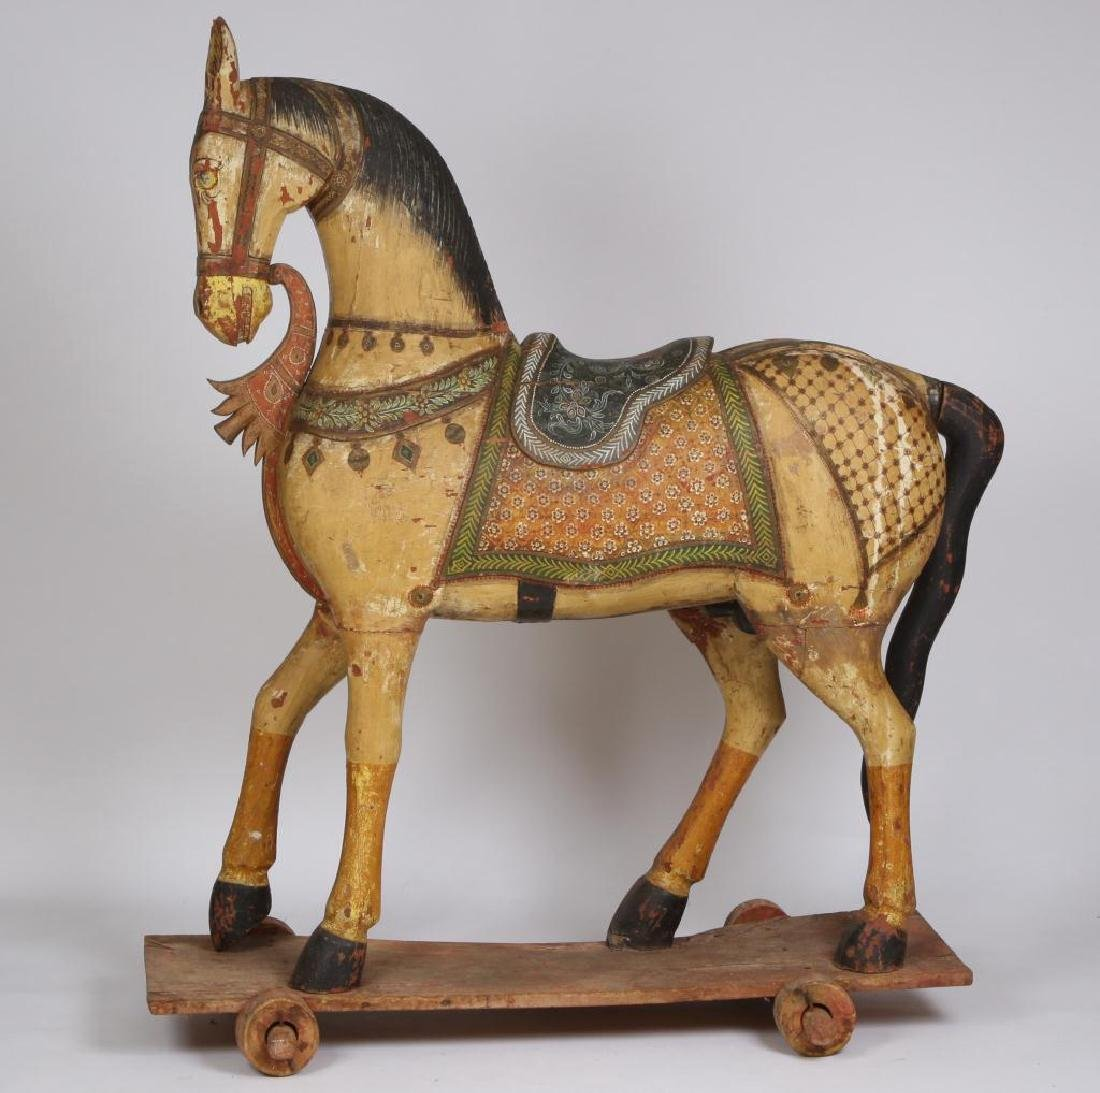 FULL SIZE CARVED AND PAINTED HORSE ON WHEELS - 7